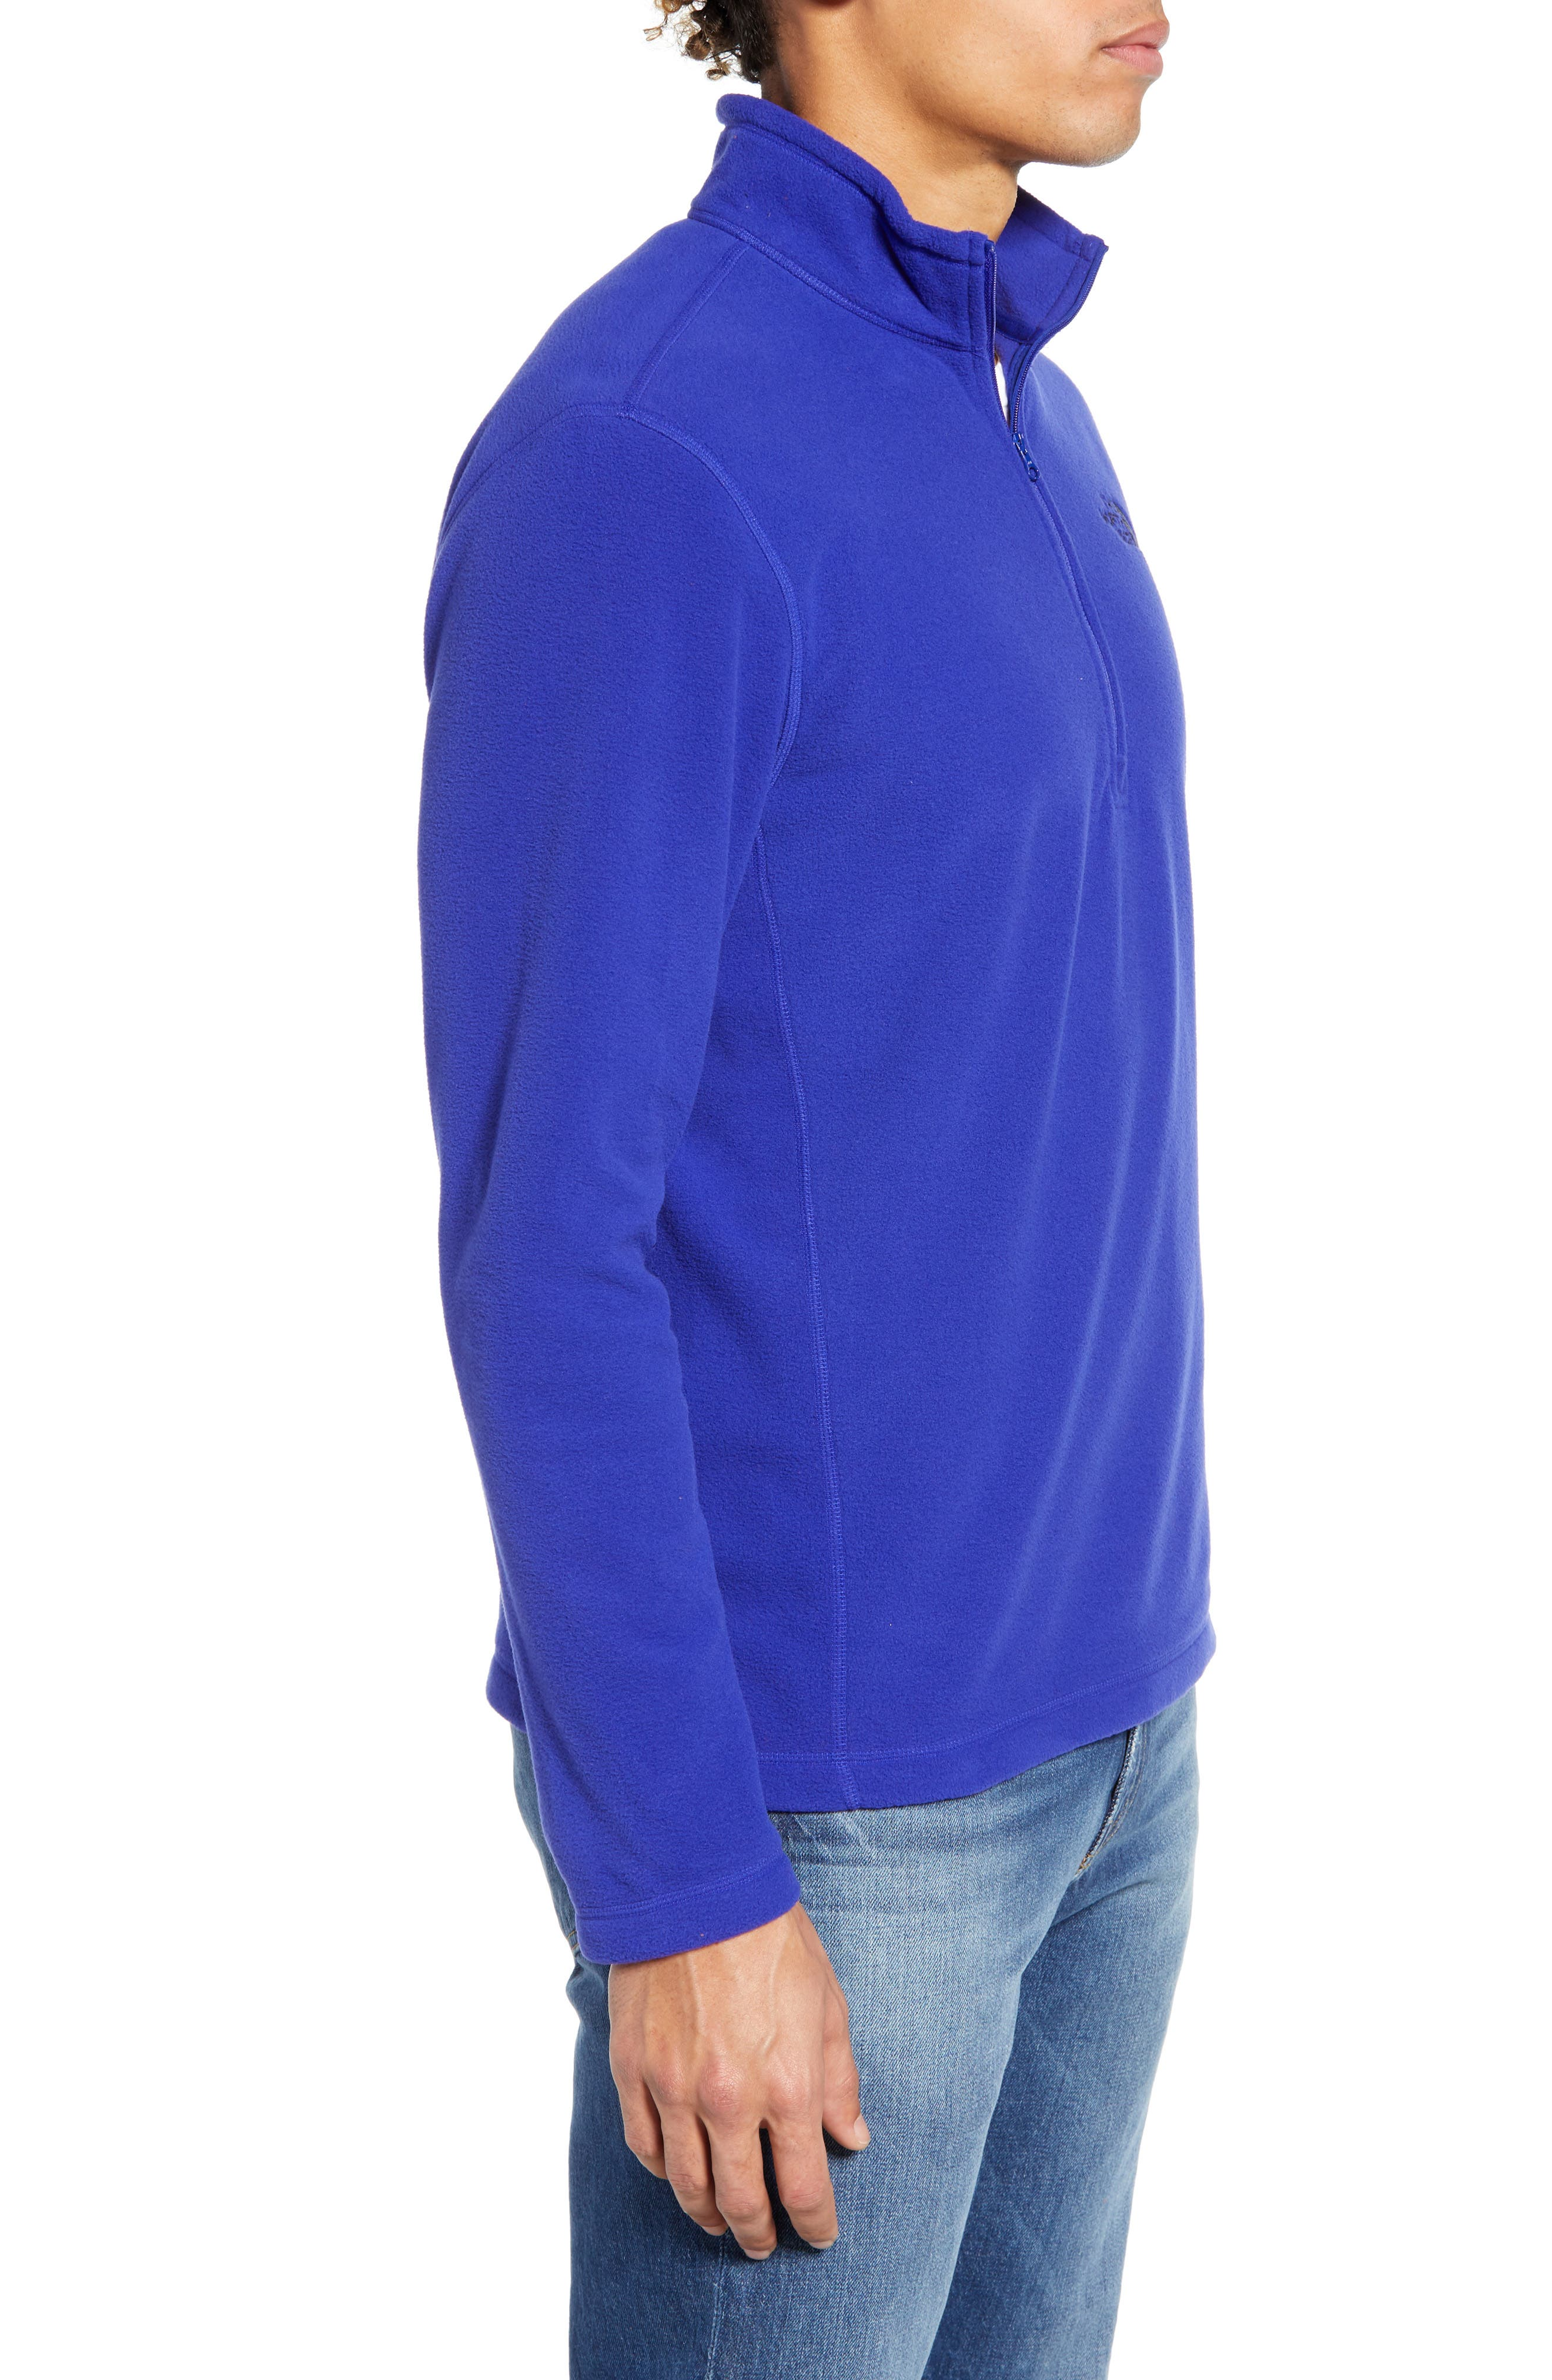 THE NORTH FACE, 'TKA 100 Glacier' Quarter Zip Fleece Pullover, Alternate thumbnail 4, color, AZTEC BLUE